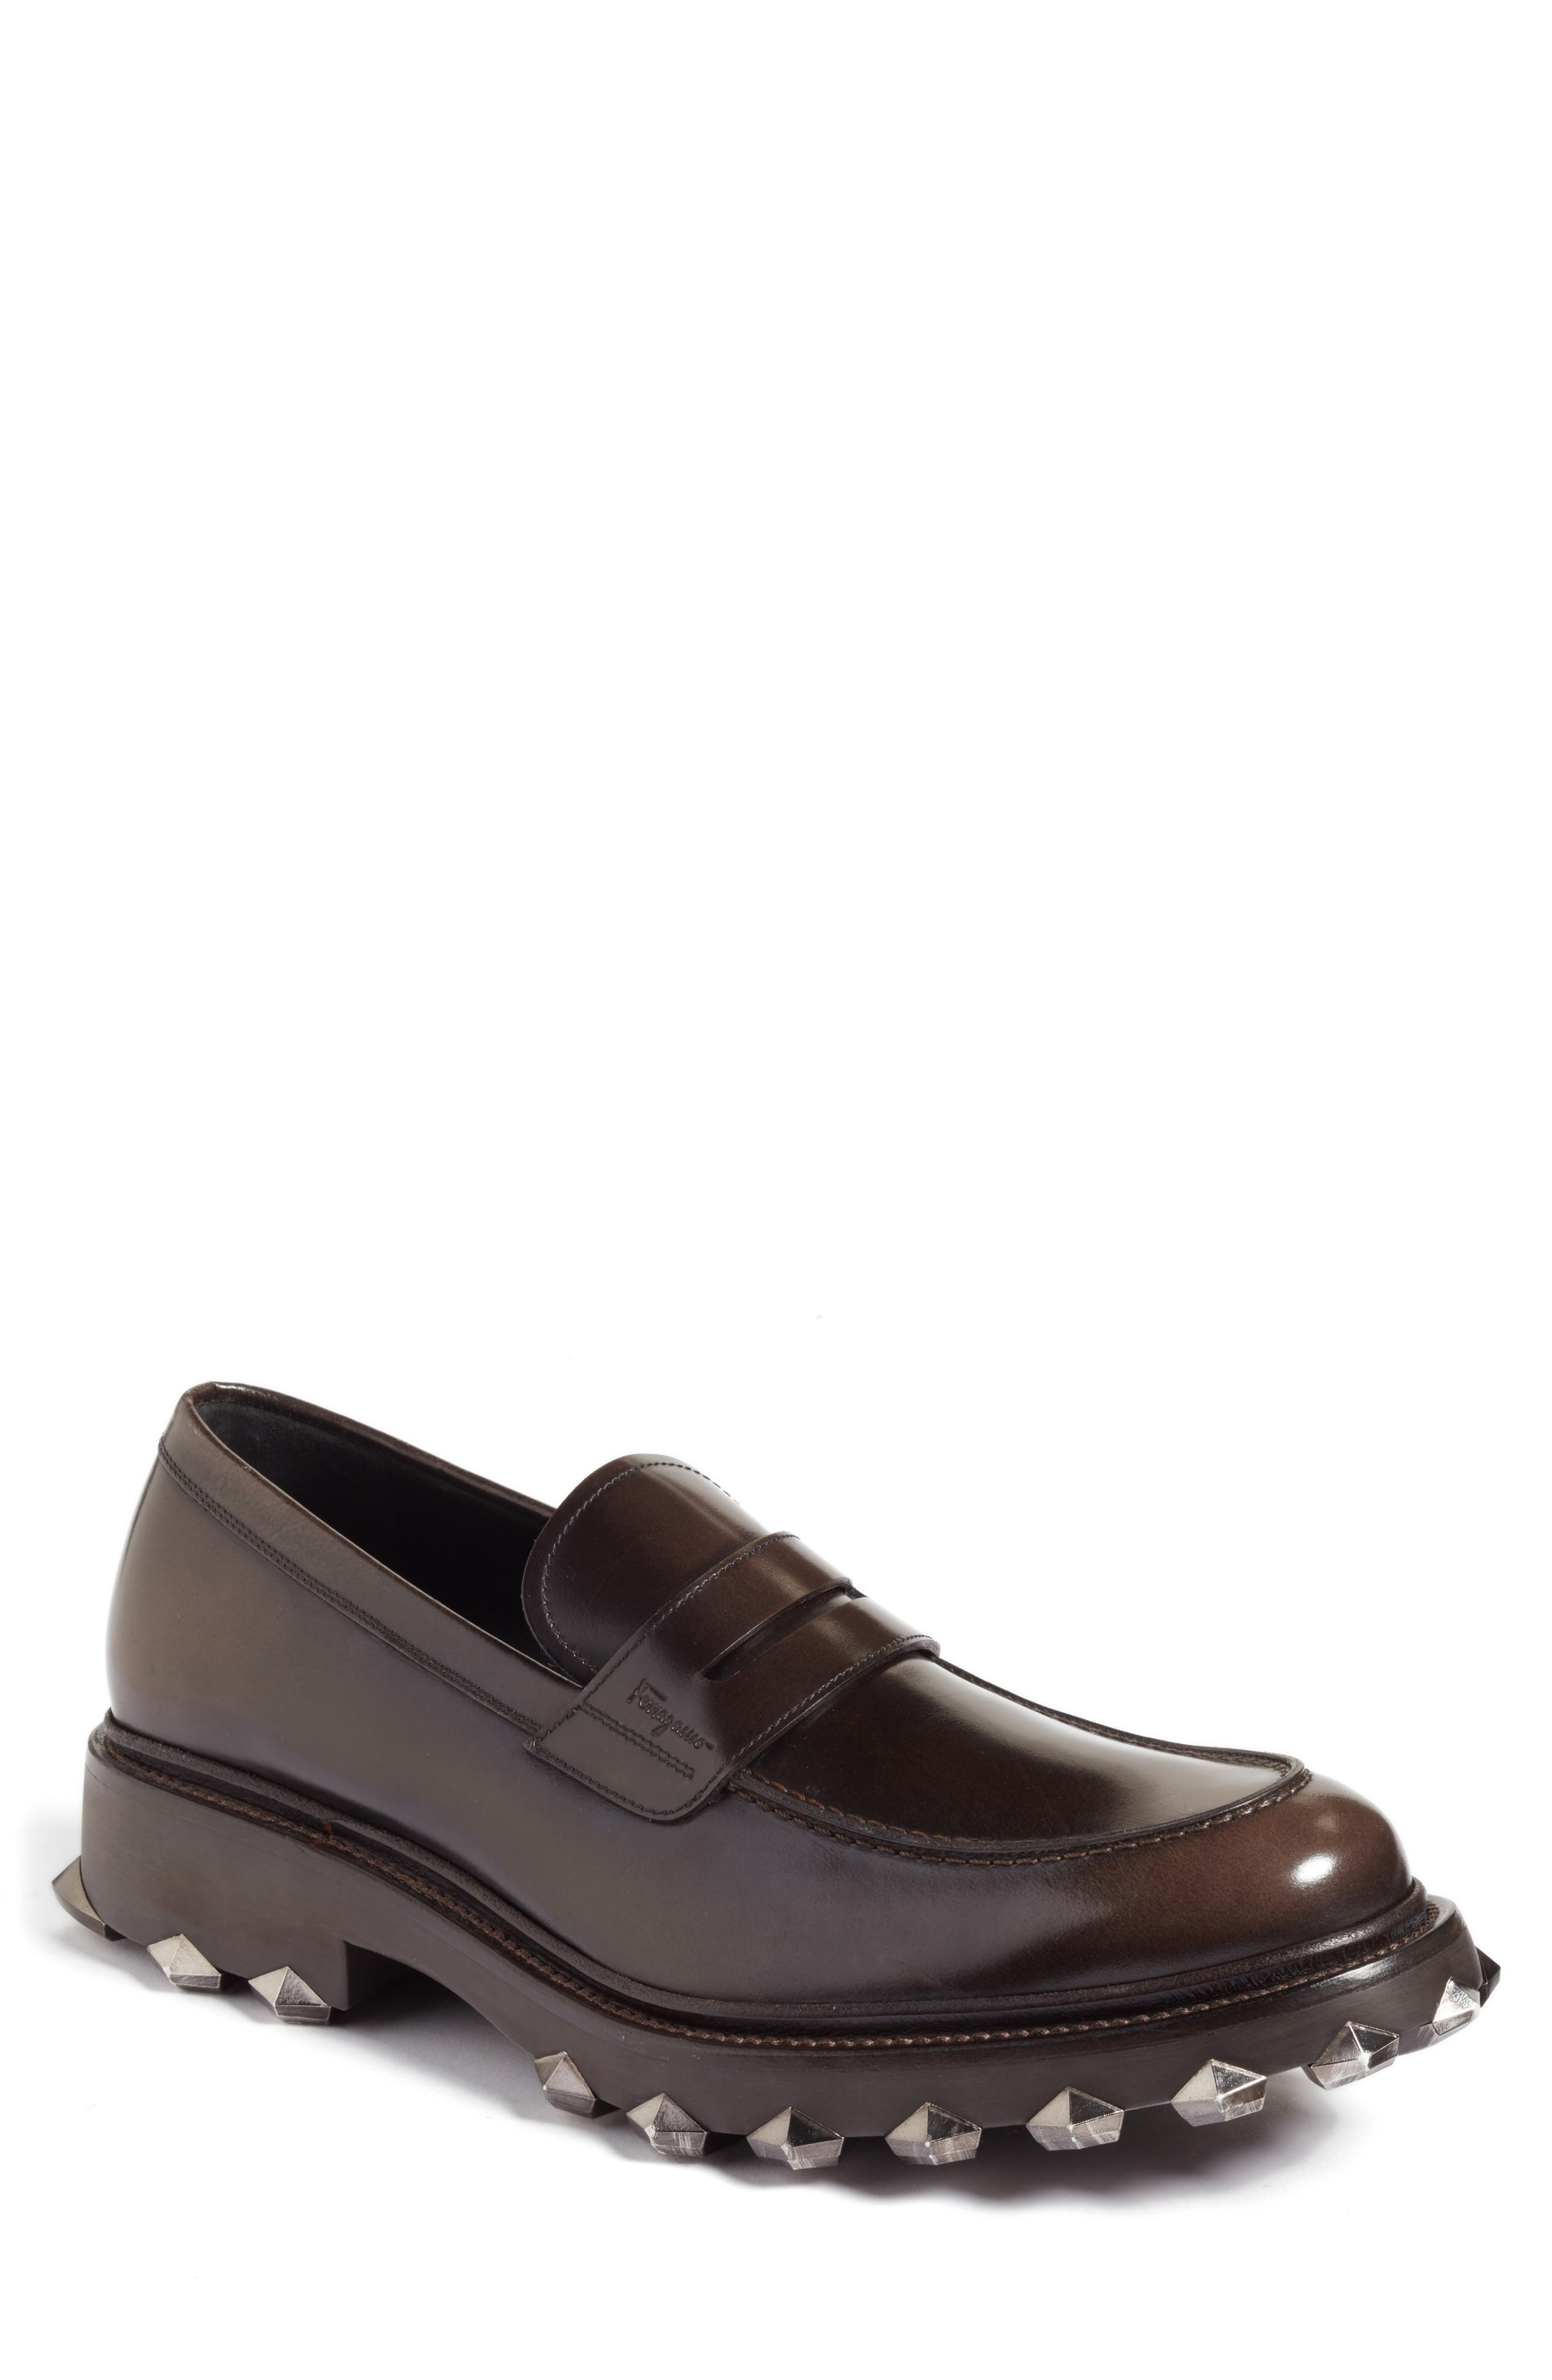 Alternate Image 1 Selected - Salvatore Ferragamo Penny Loafer (Men)